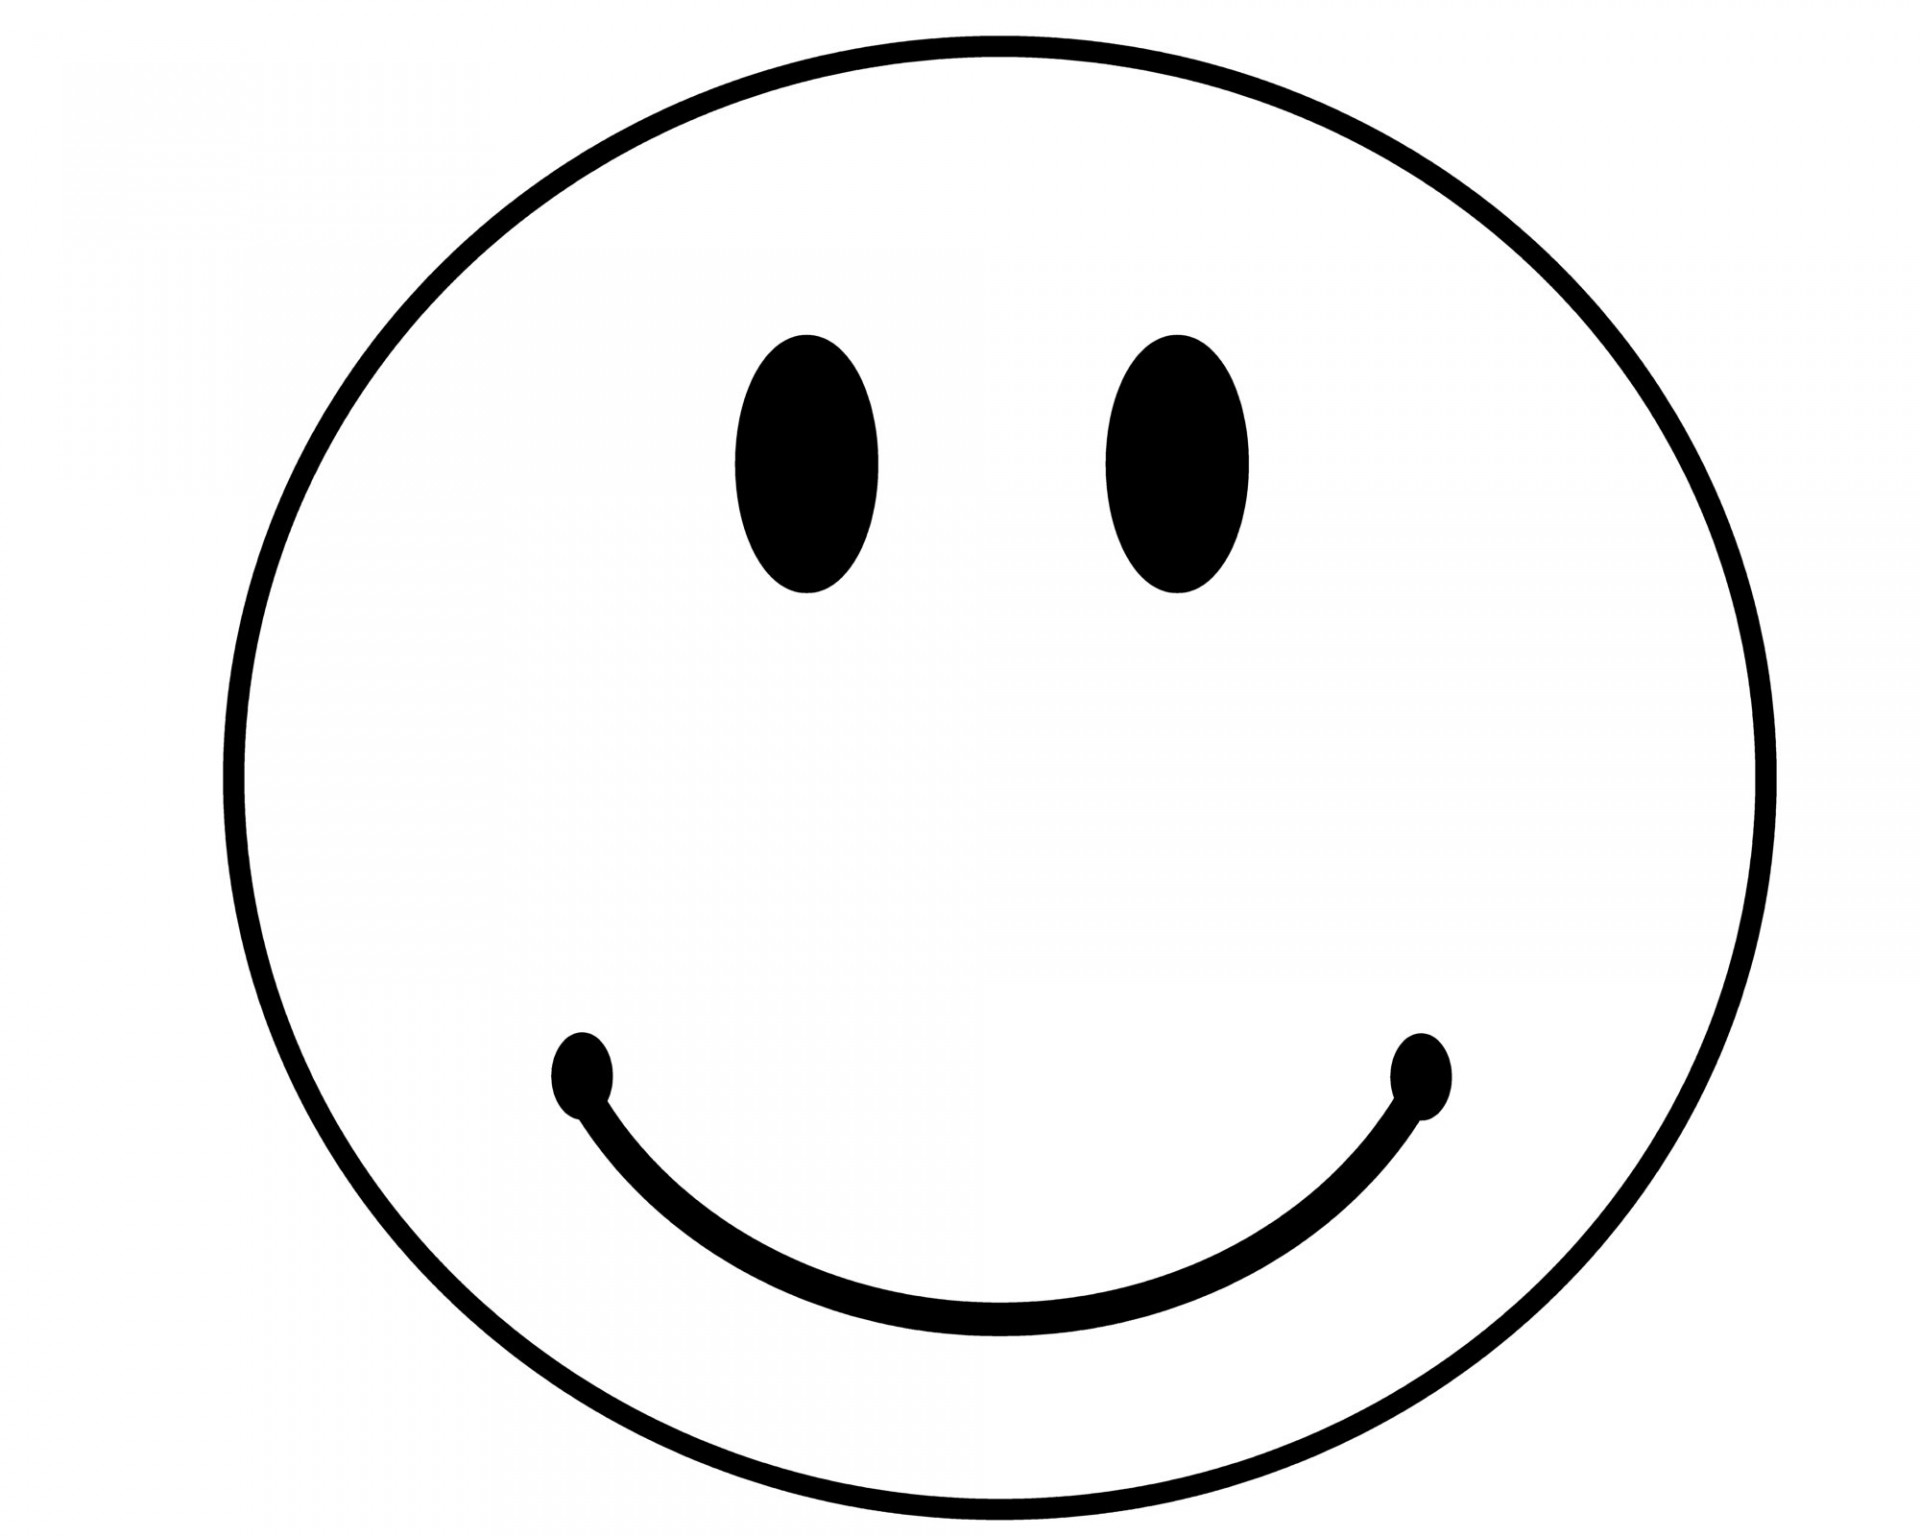 Free Clip Art Smiley Face Tumundografico-Free clip art smiley face tumundografico-6